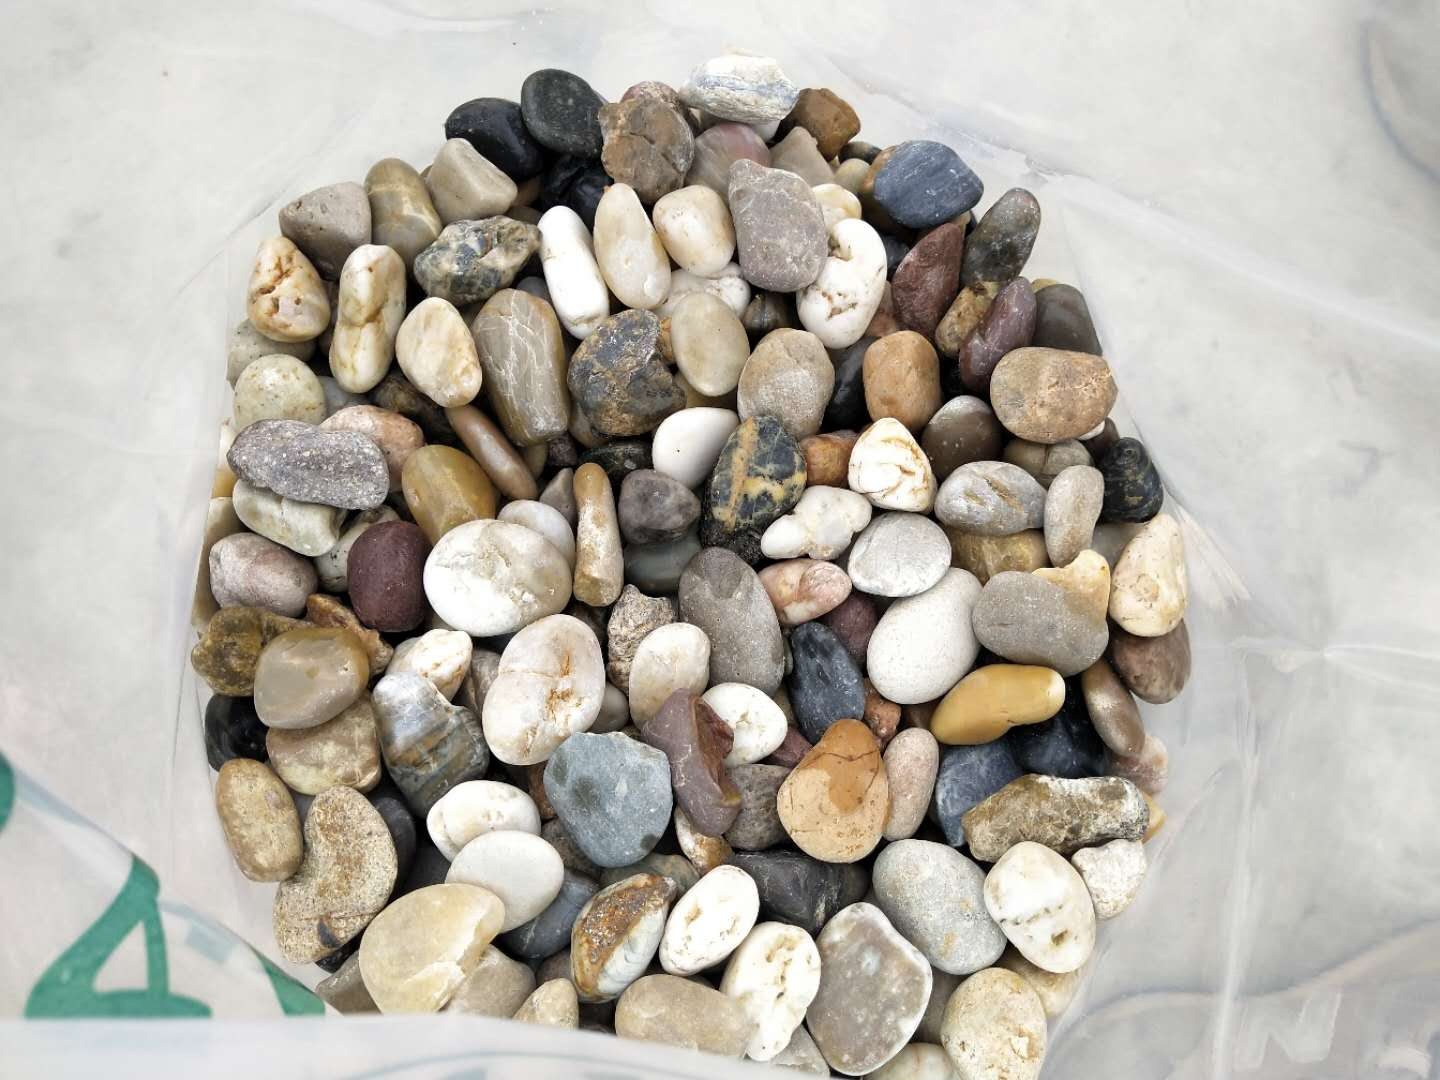 Landscaping Stone Natural unpolished River Pebble